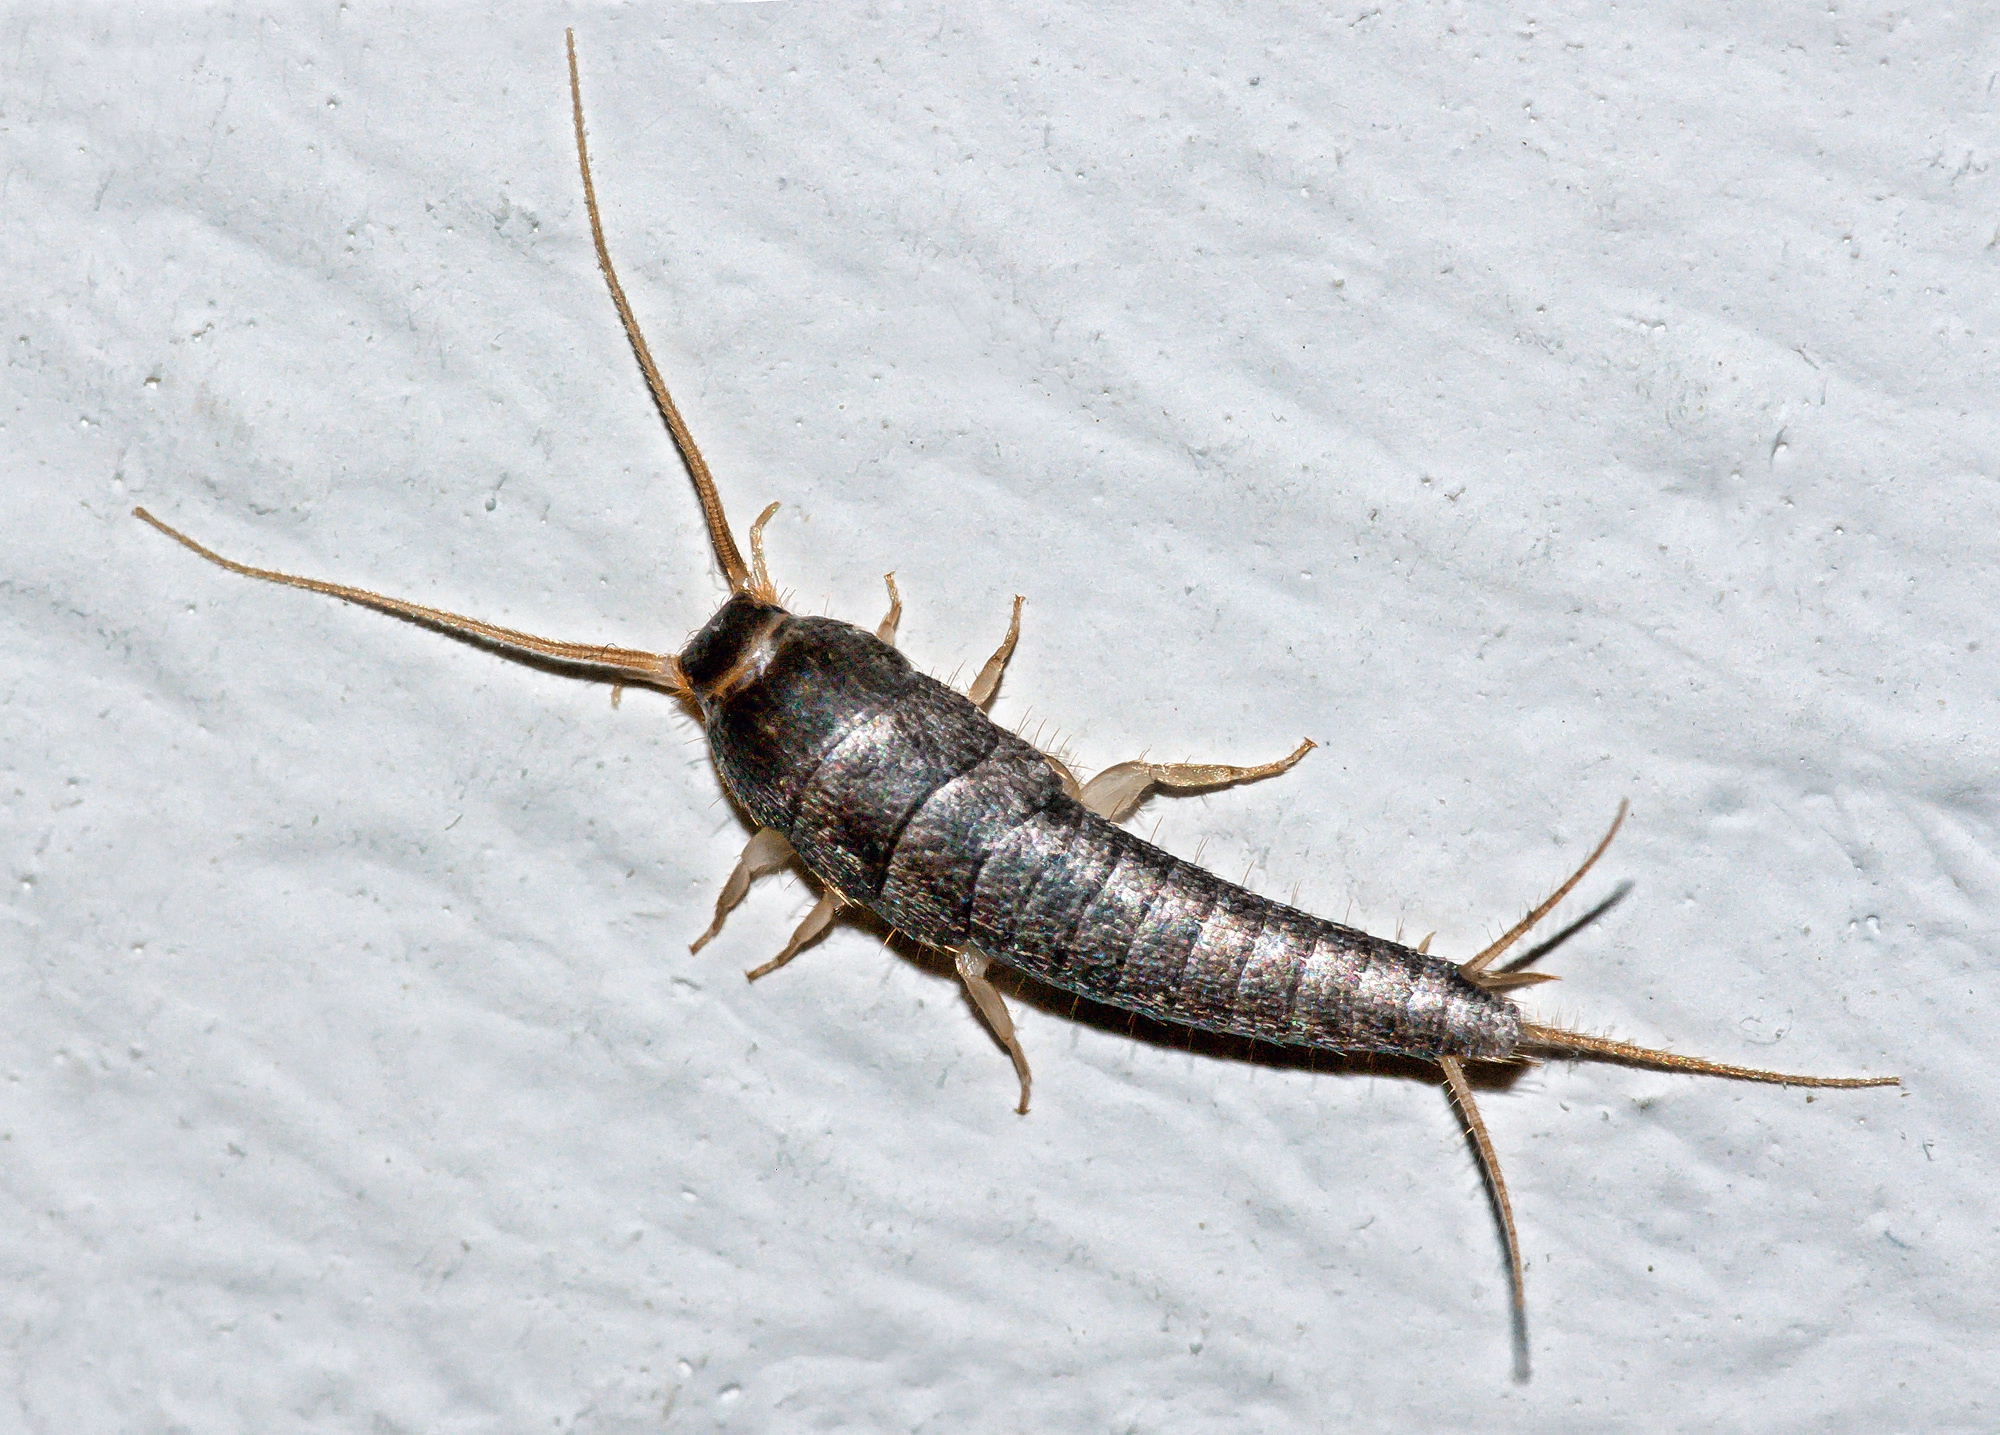 silverfish how to get rid of silverfish pest control prevention the old farmer 39 s almanac. Black Bedroom Furniture Sets. Home Design Ideas